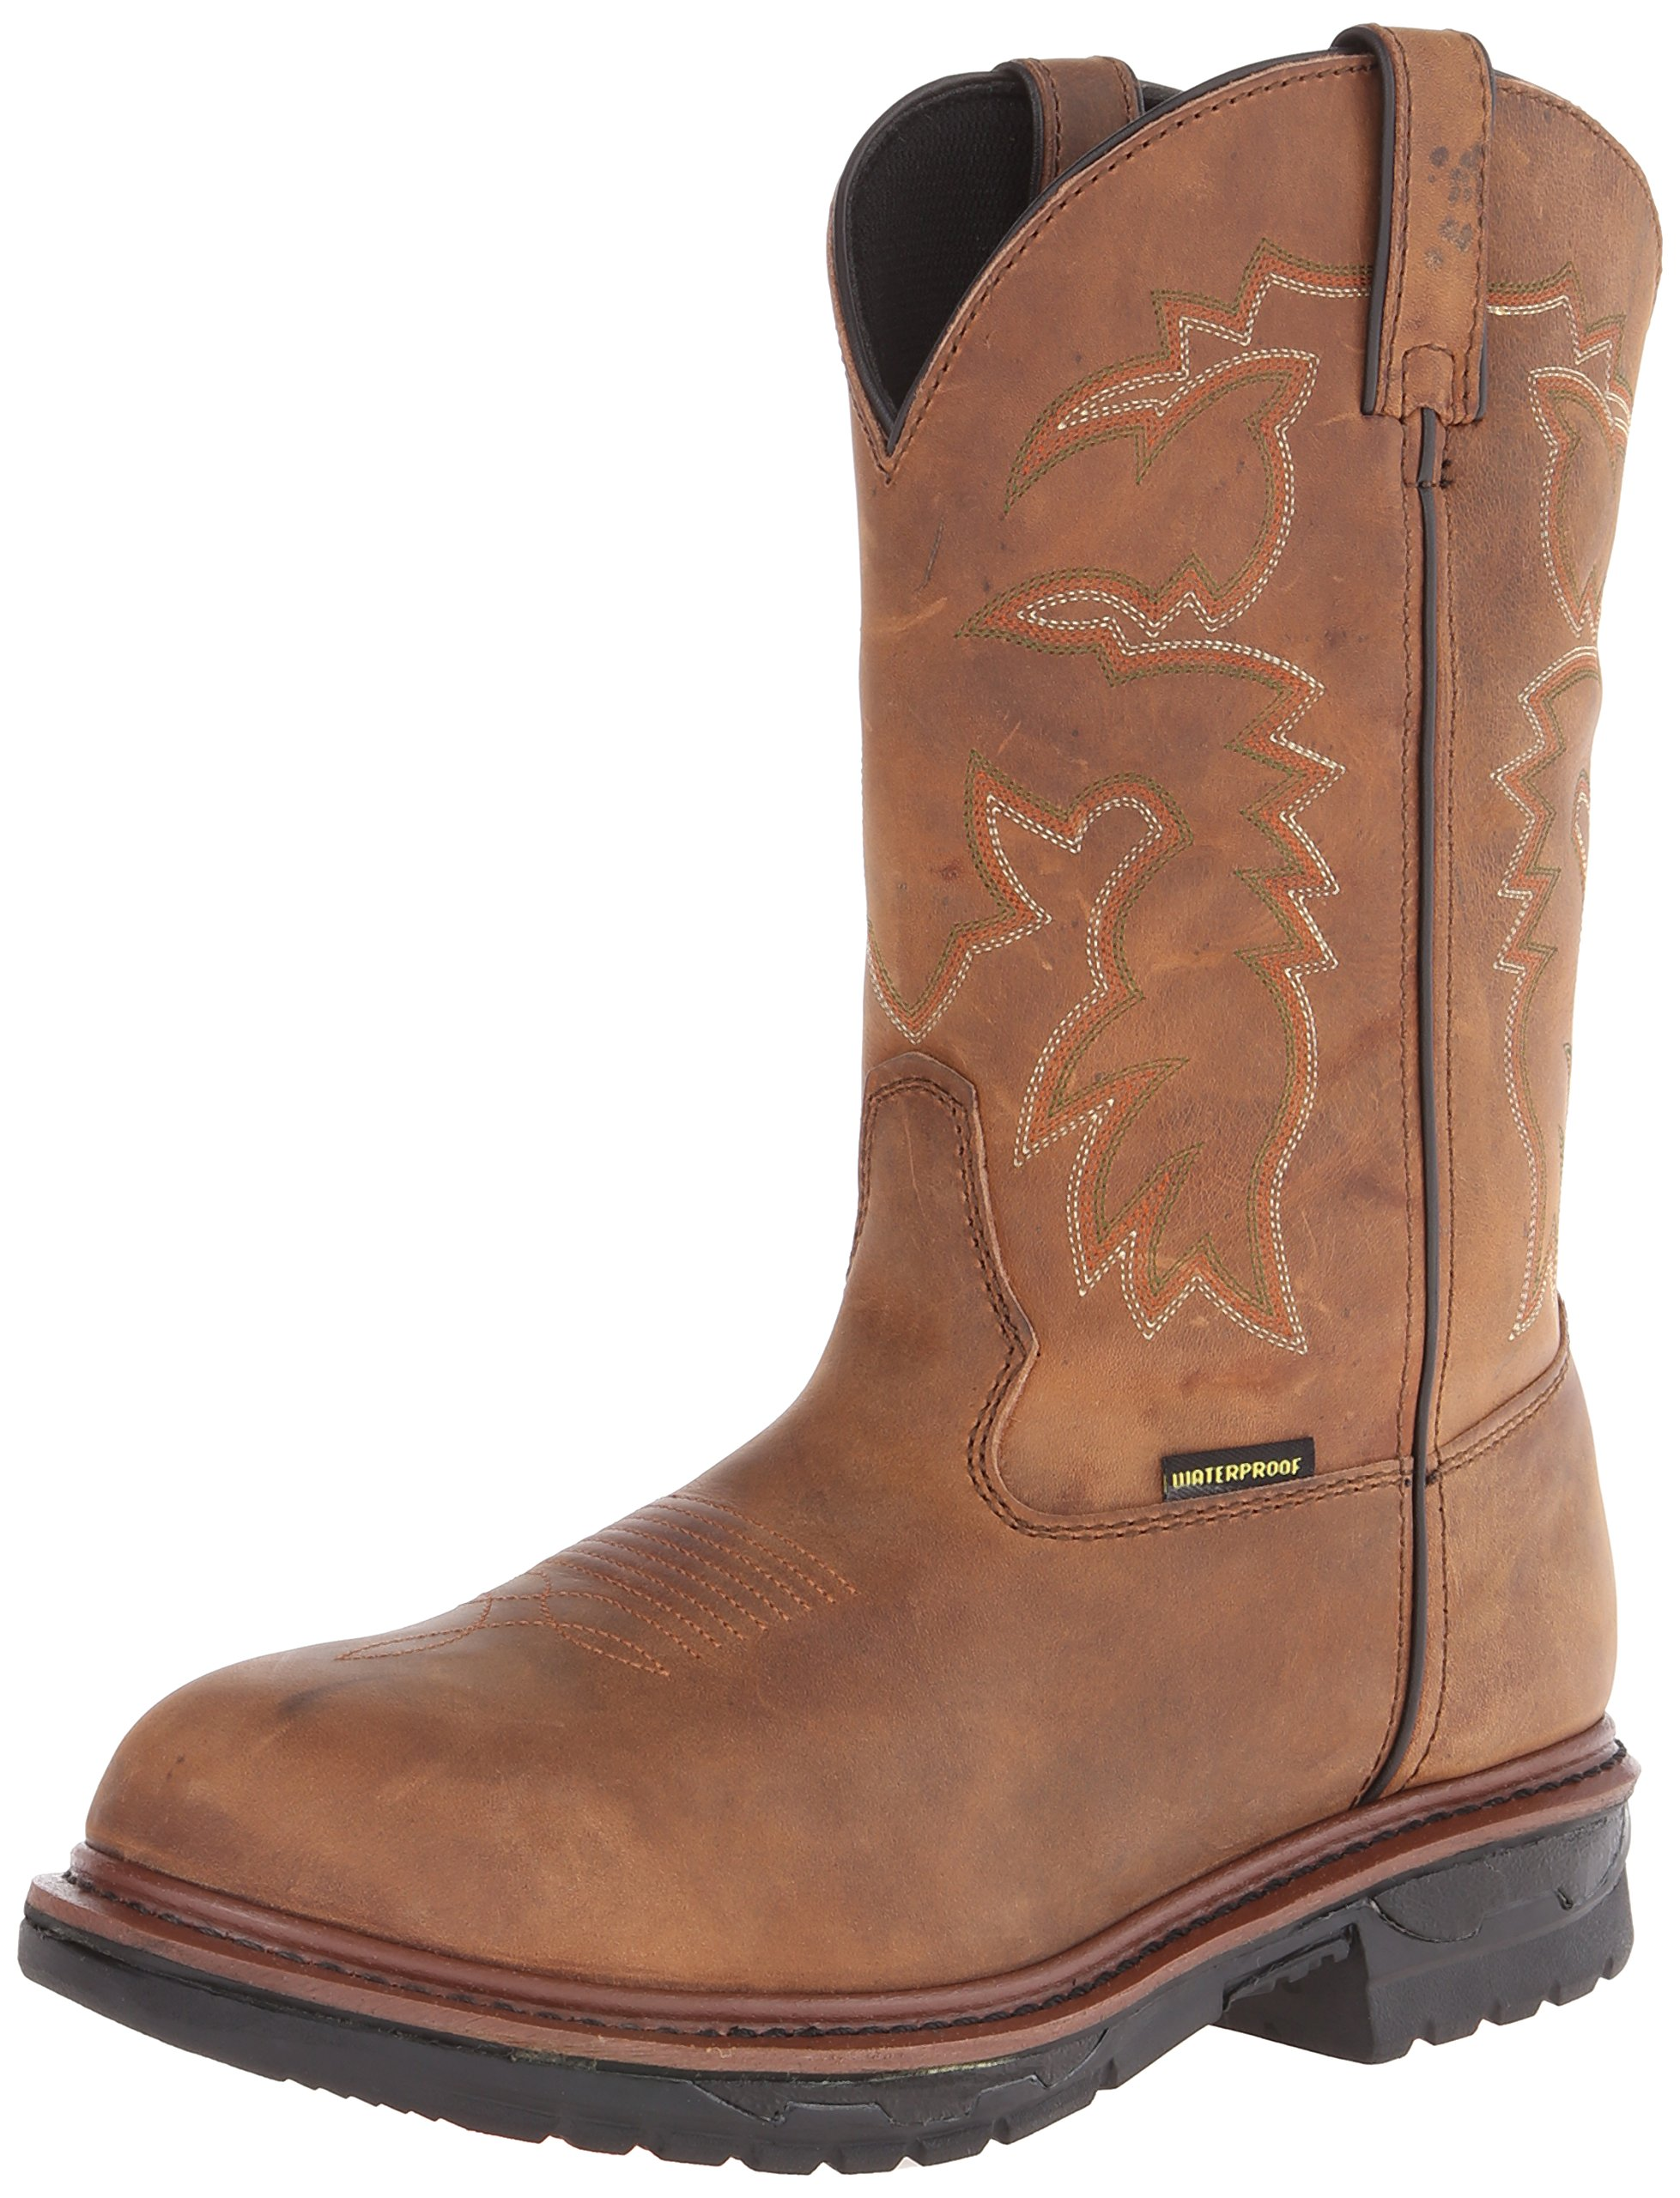 Dan Post Men's Anvil Work Boot,Saddle Tan,12 D US